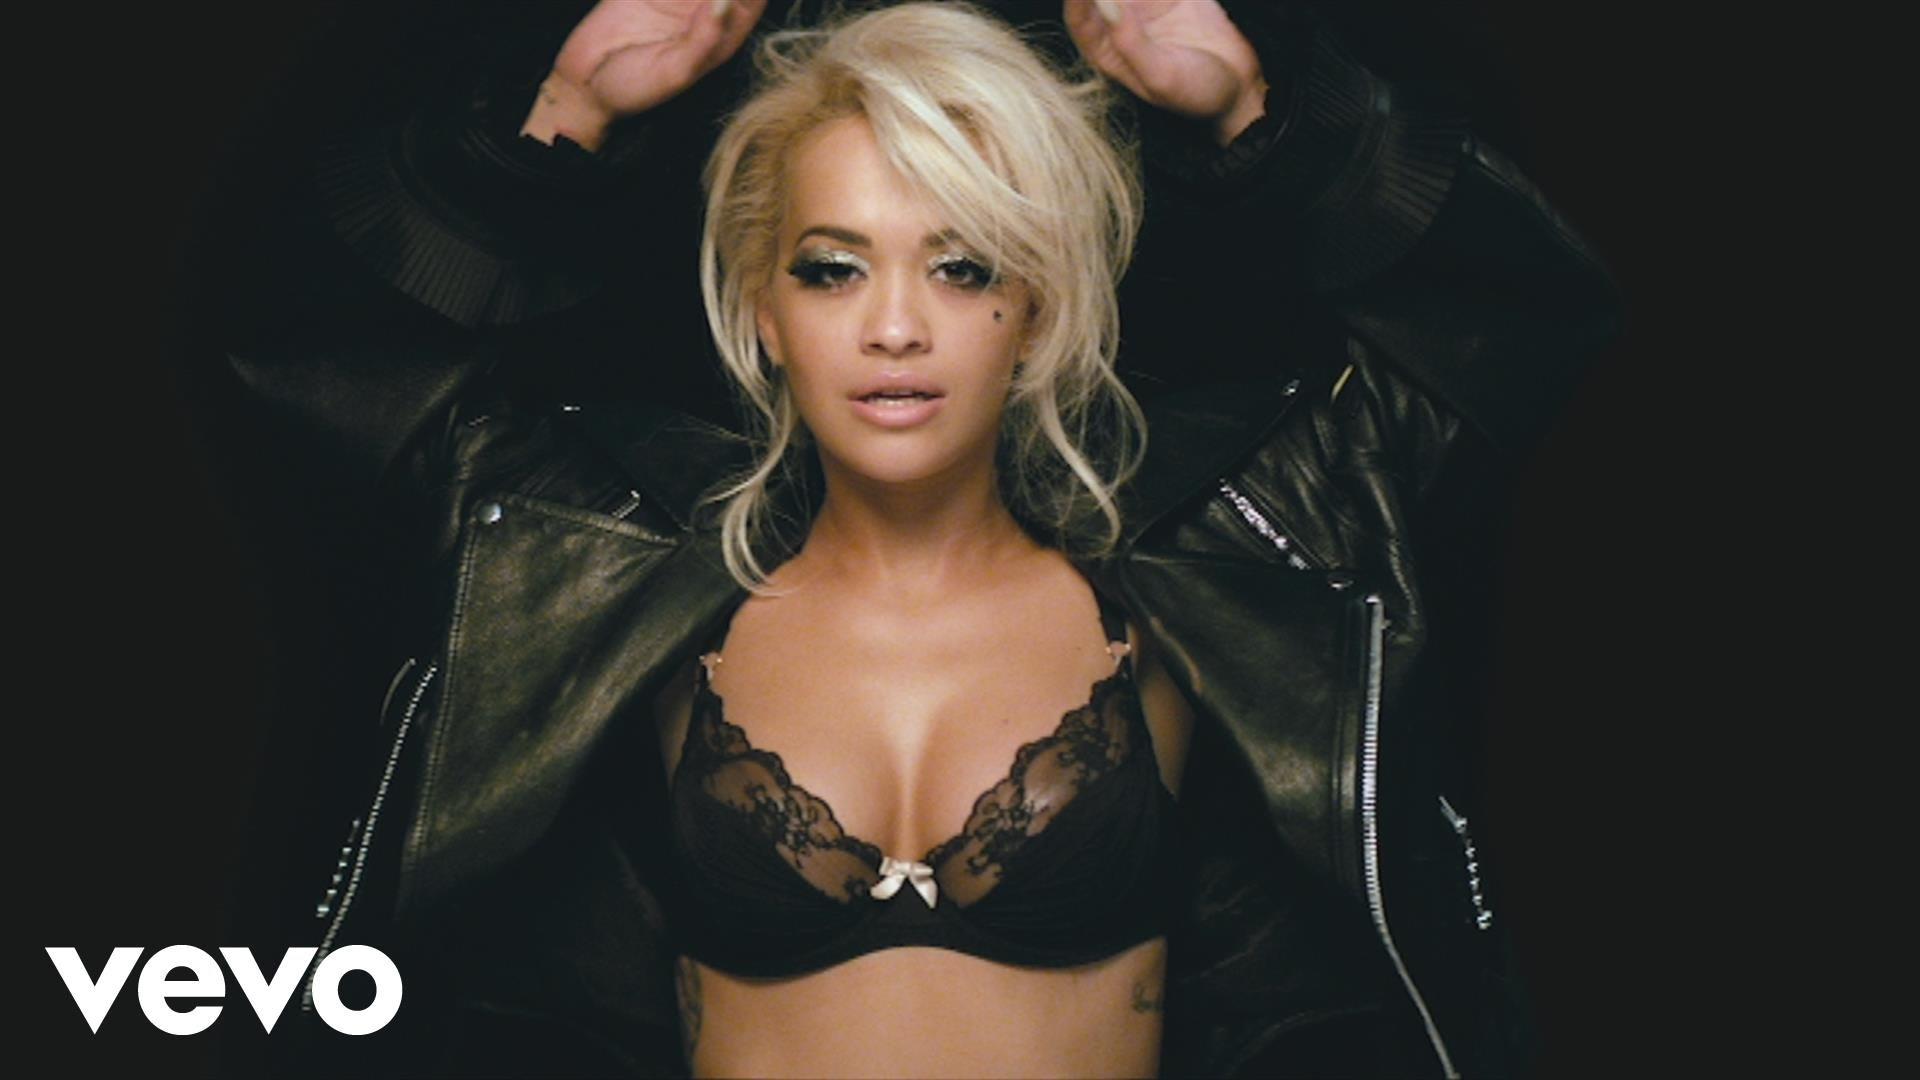 Rita Ora rejects The Voice as she agrees to sign up to X Factor with £